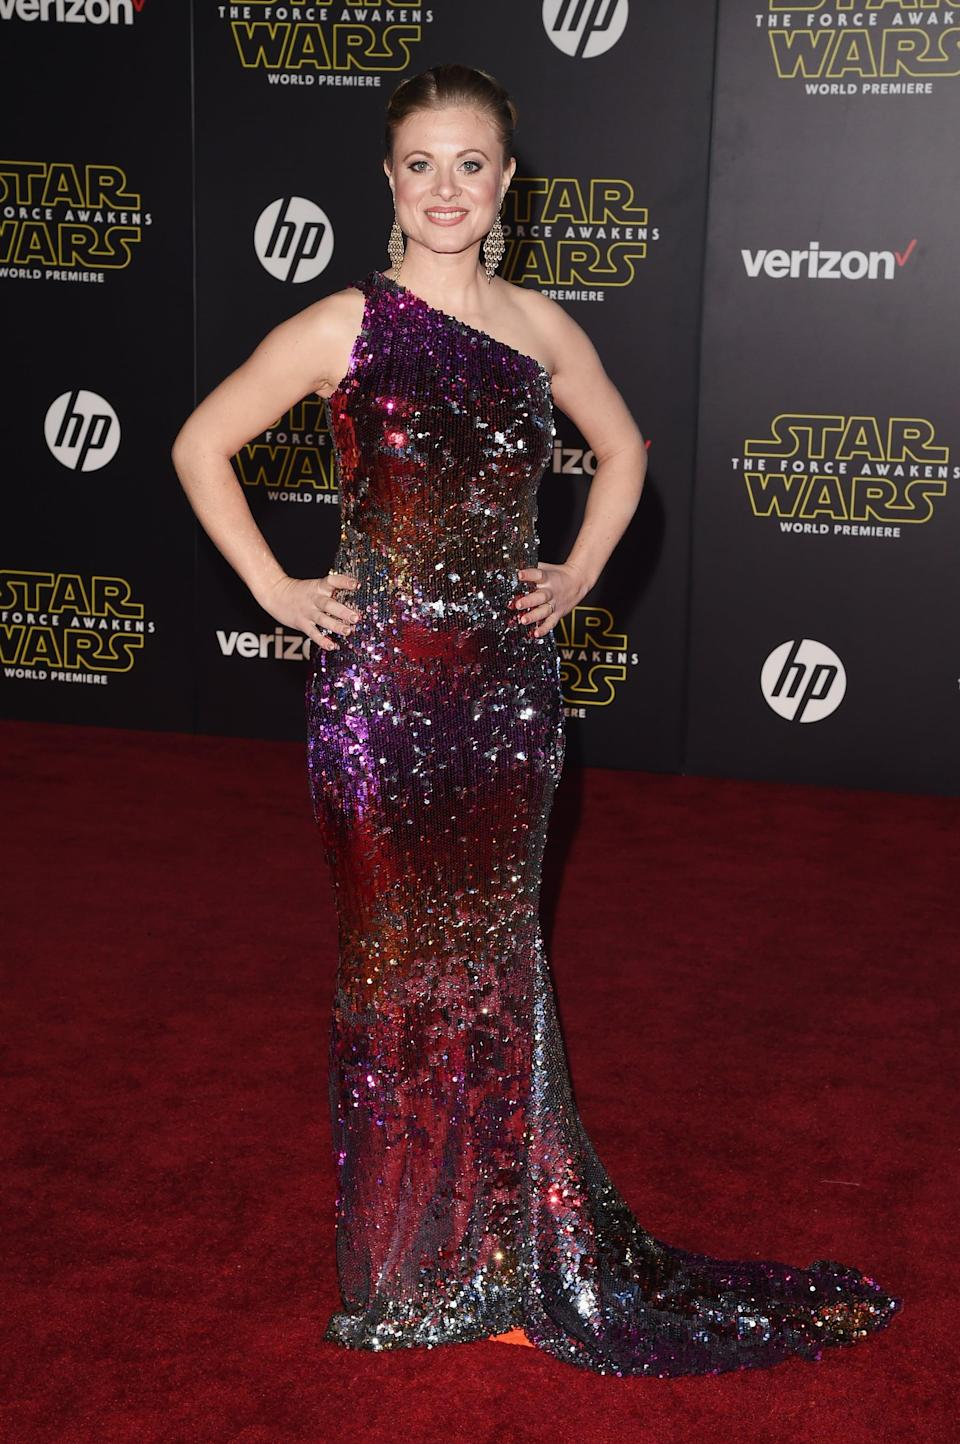 <p>Like onscreen husband Edgerton, Piesse is reprising her role from the prequel trilogy as the younger version of Luke's aunt Beru. Unlike many of her costars, Piesse hasn't really acted much in the years since; she's mostly appeared in short films. </p>